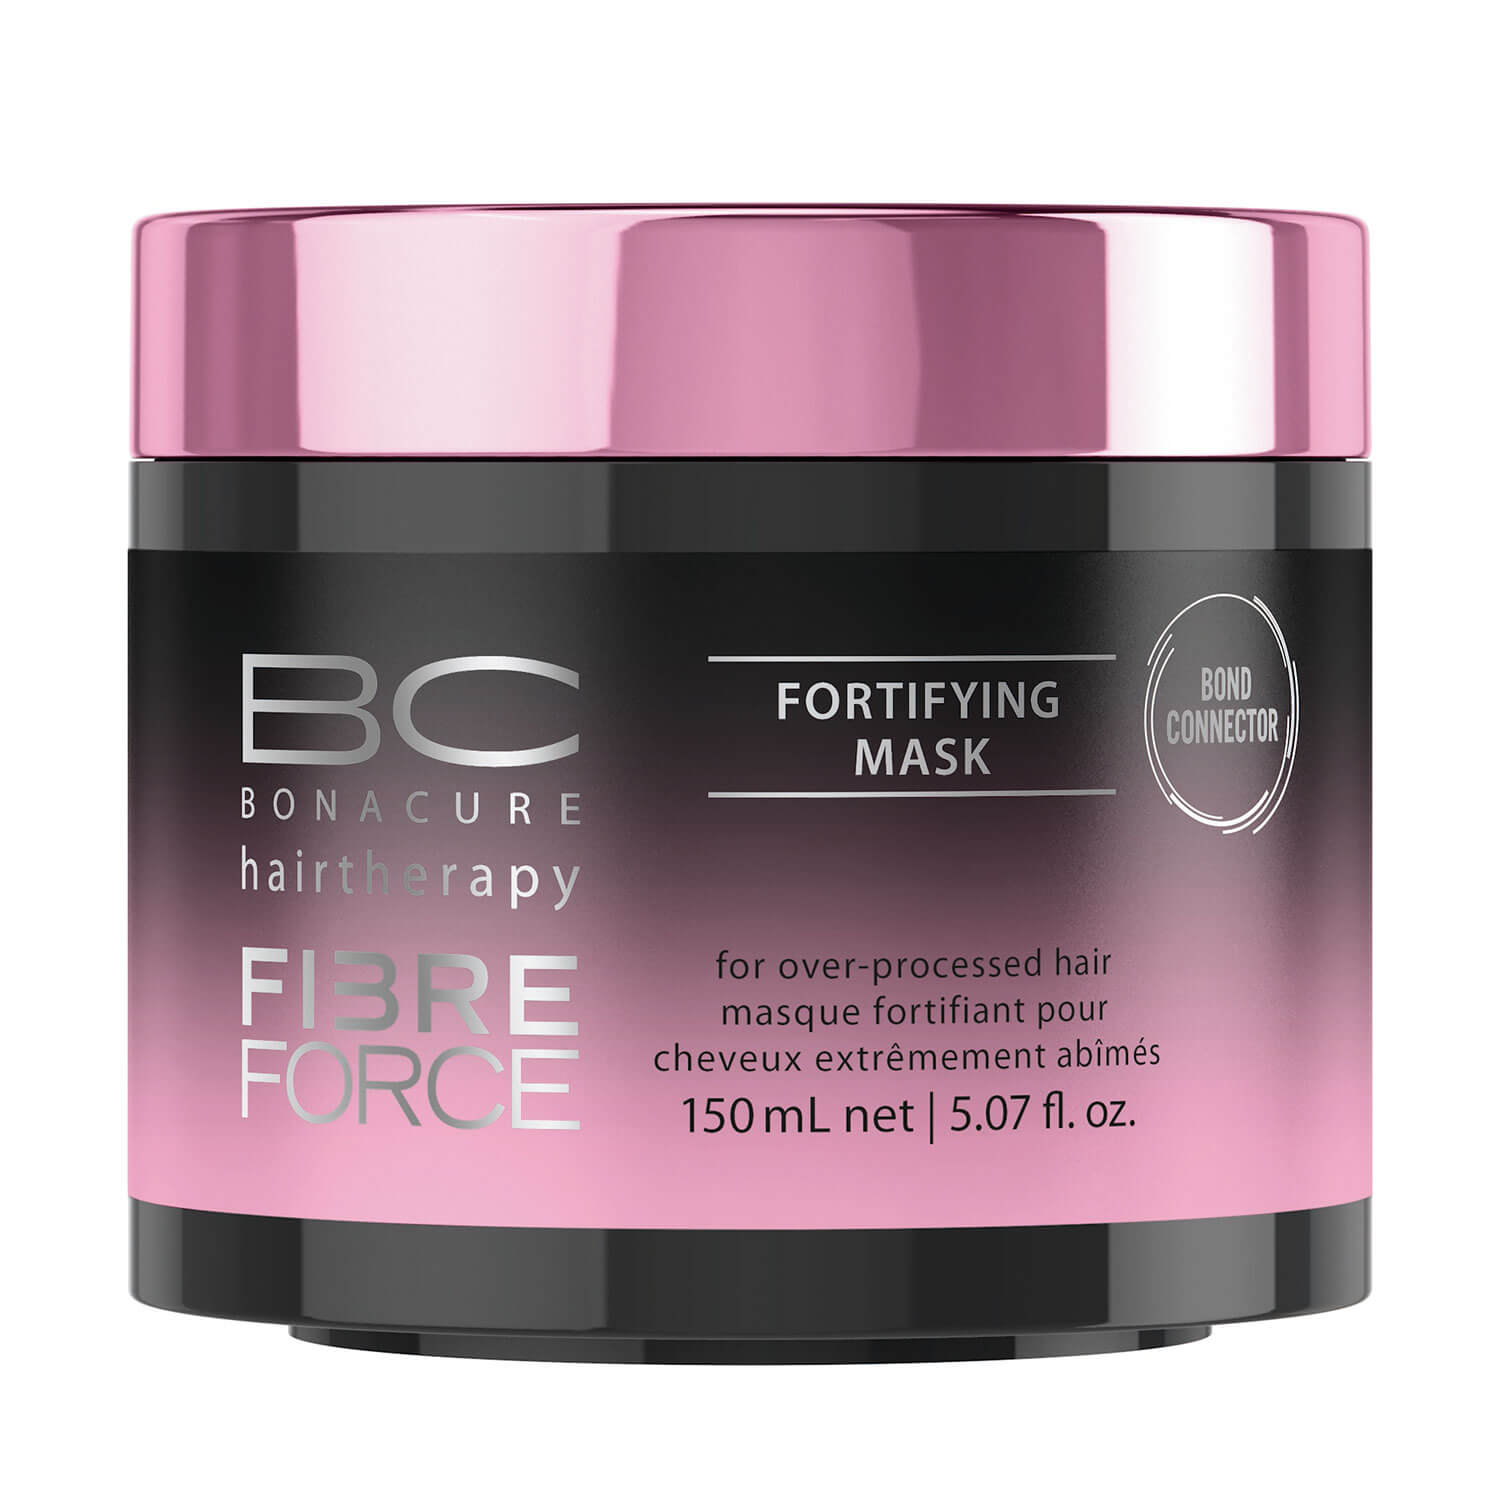 BC Fibre Force - Fortifying Mask - 150ml